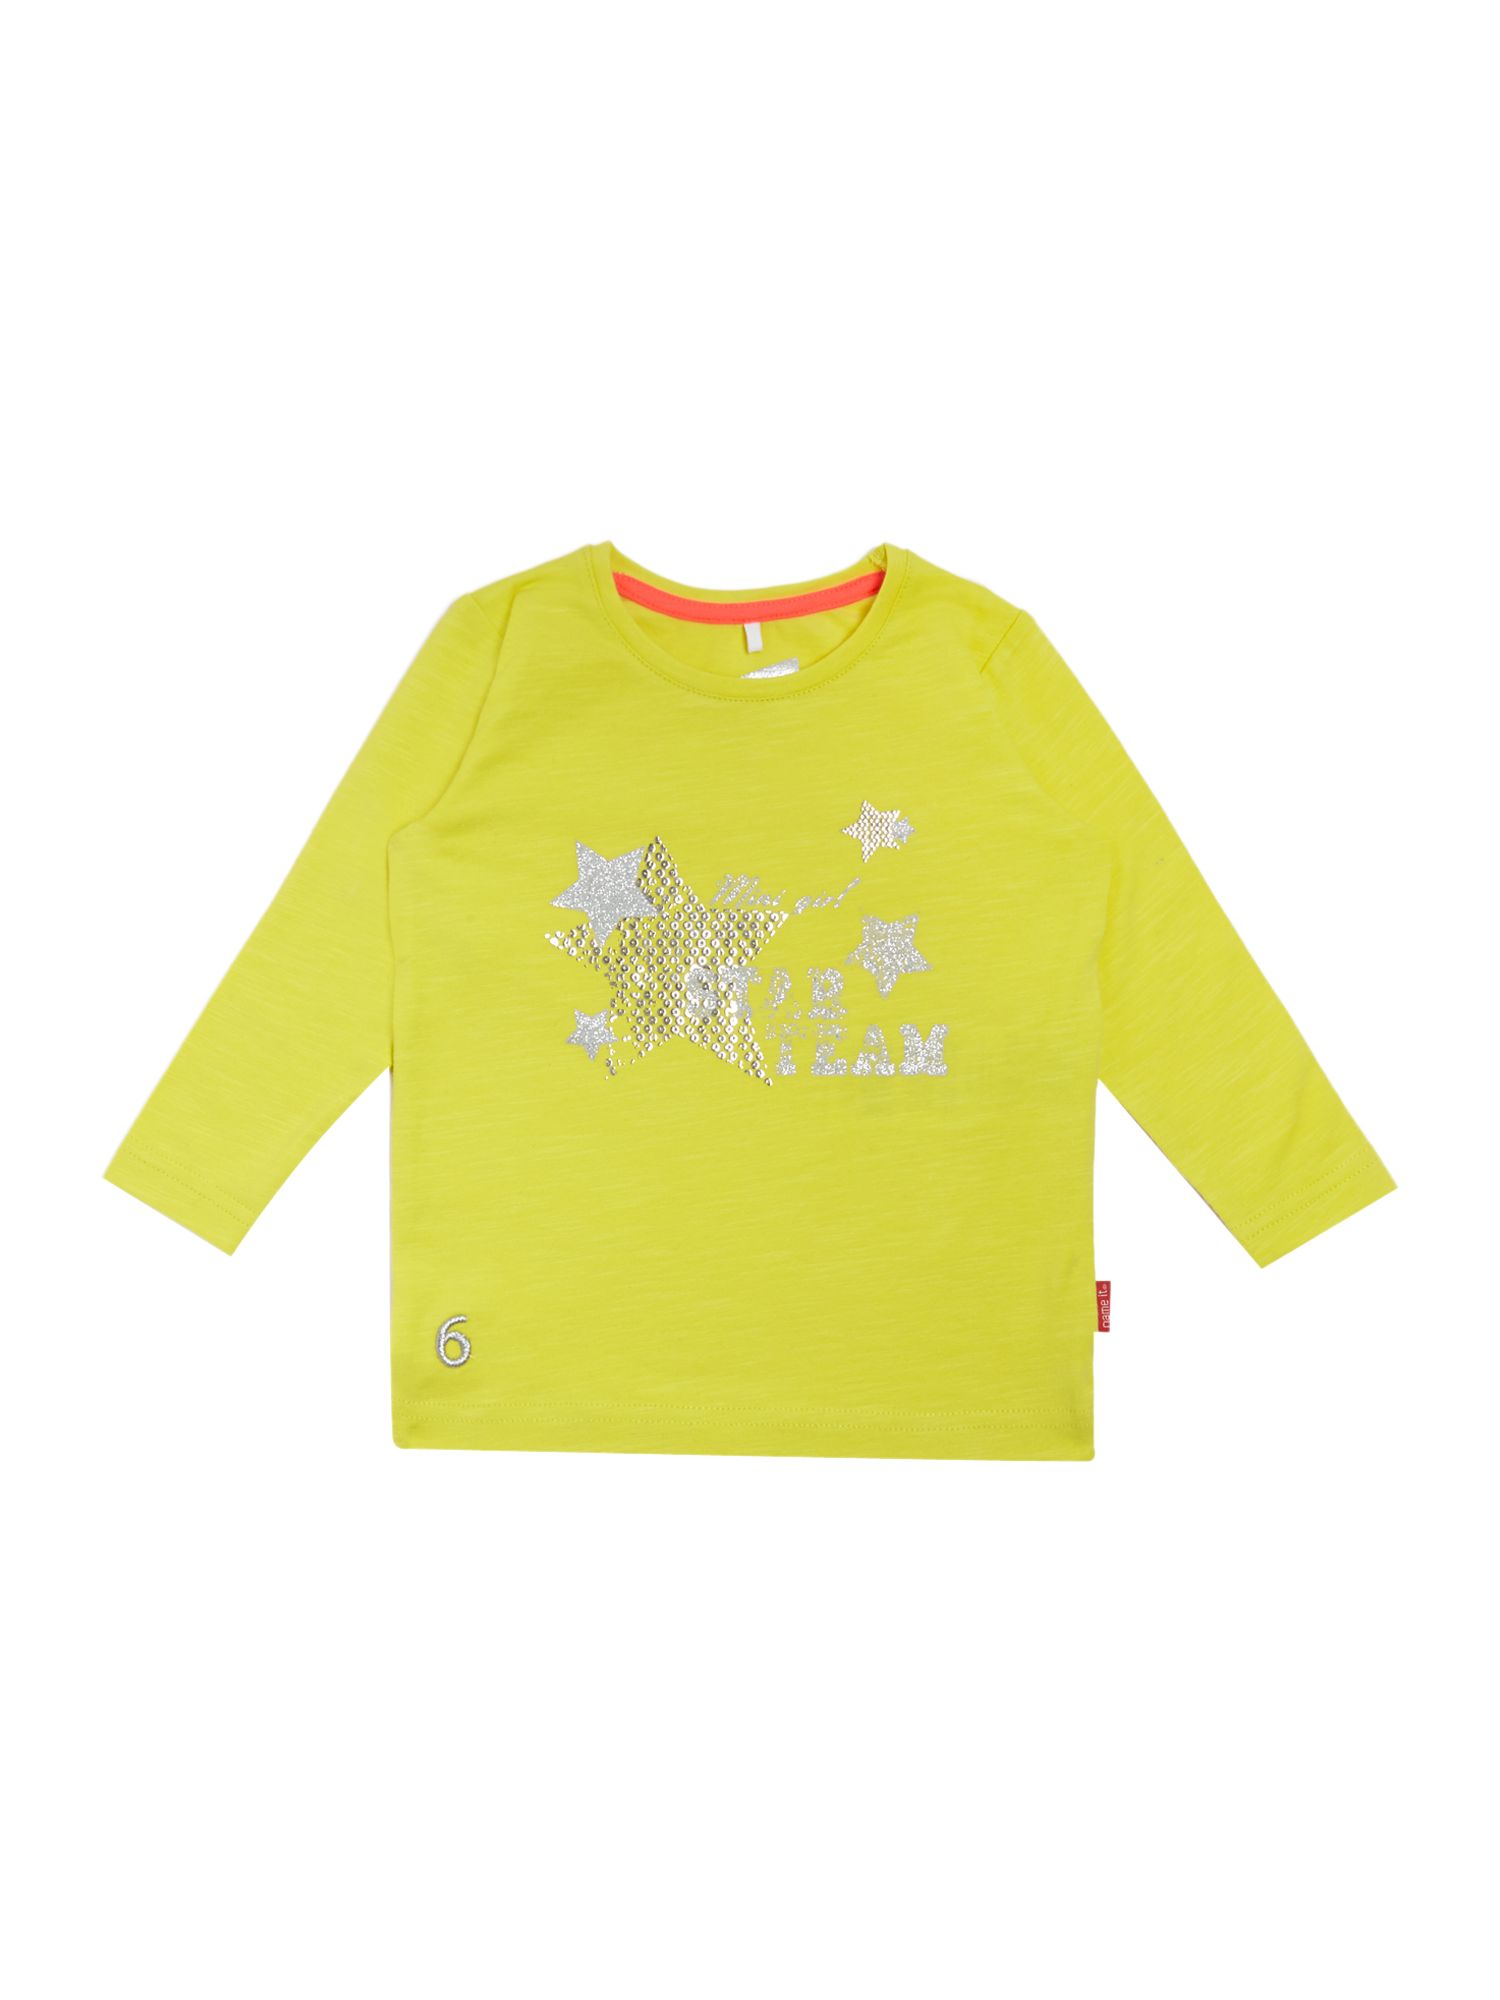 Girls star print t-shirt